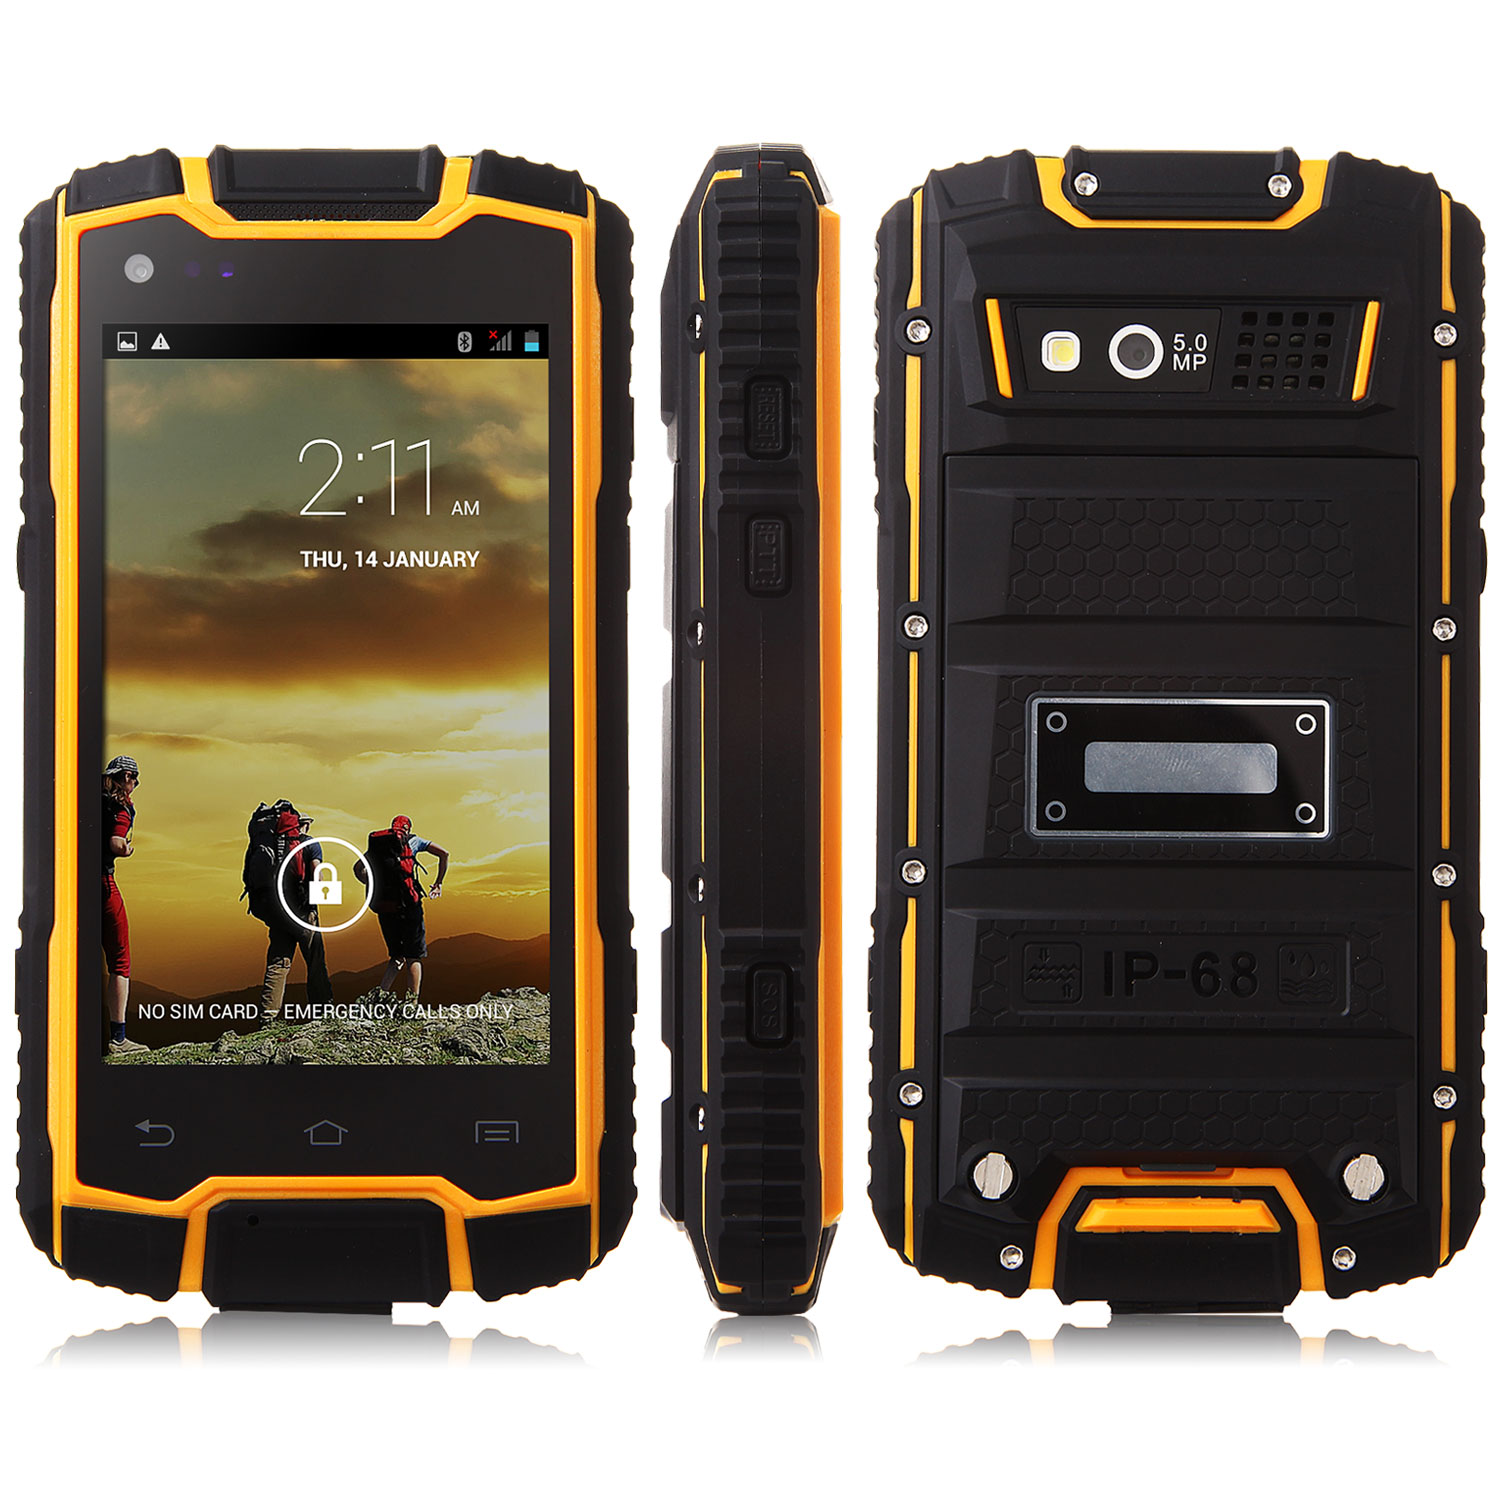 DG1 Smartphone IP68 MTK6582 Quad Core 1GB 8GB 4.0 Inch PTT 3200mAh Battery Black&Yellow